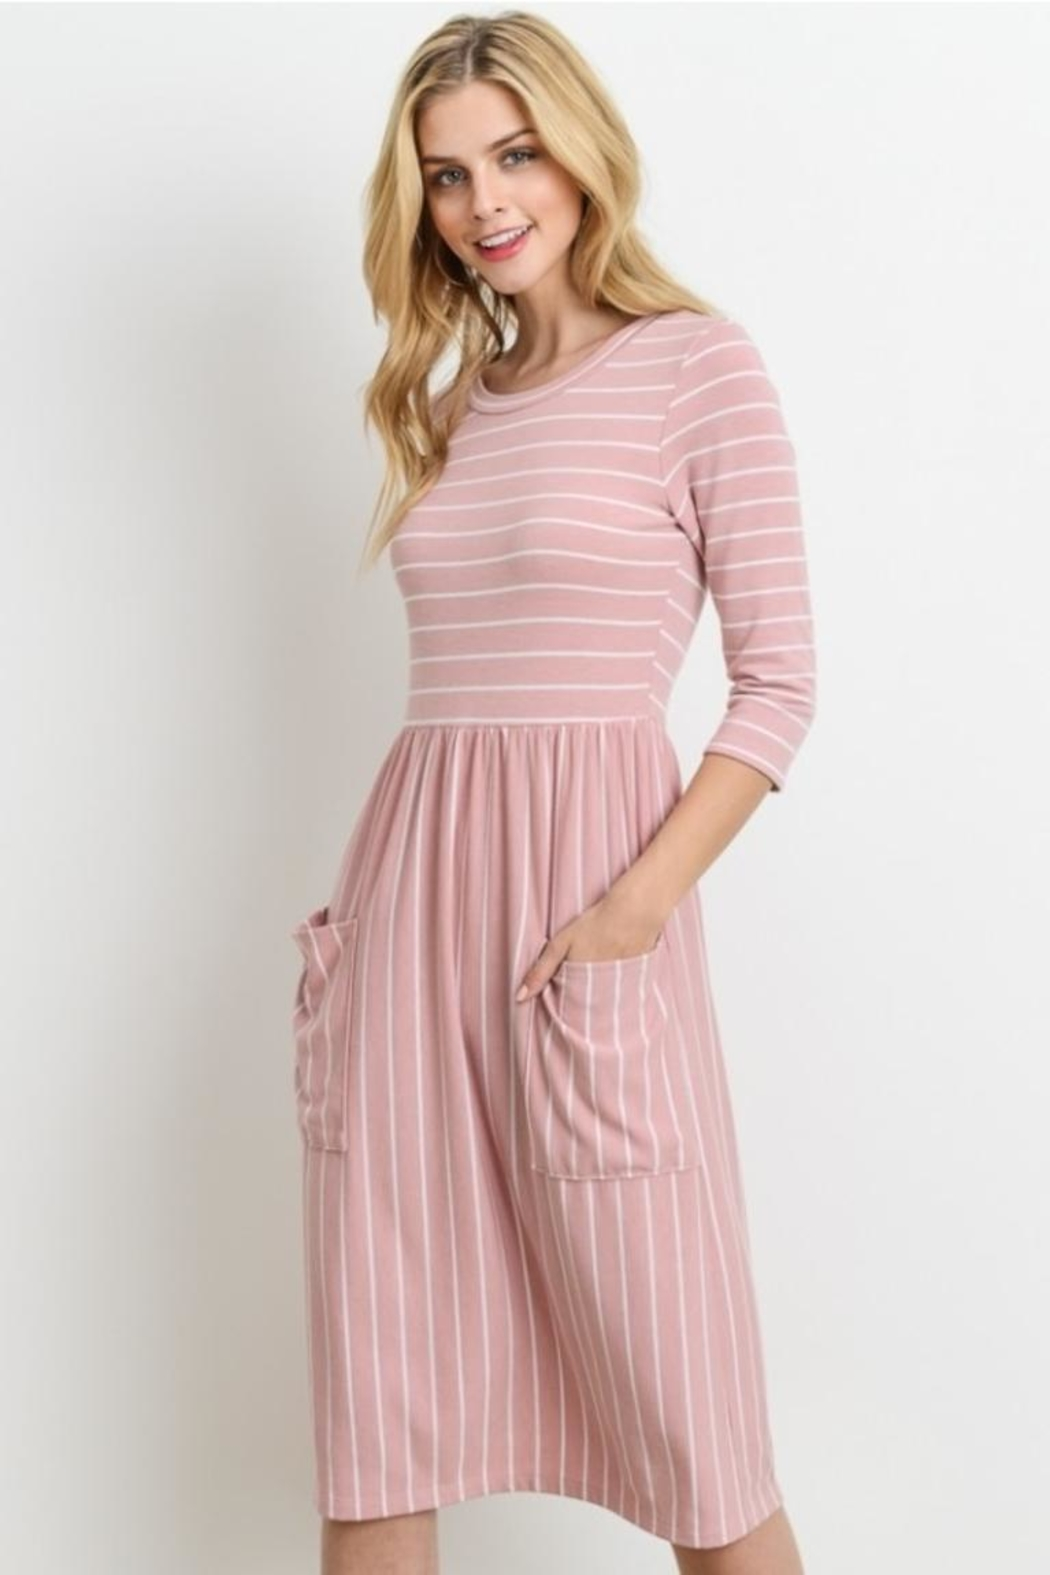 8865ba5412ac Le Lis Pink Striped Dress from New York City by Fashion Queen ...